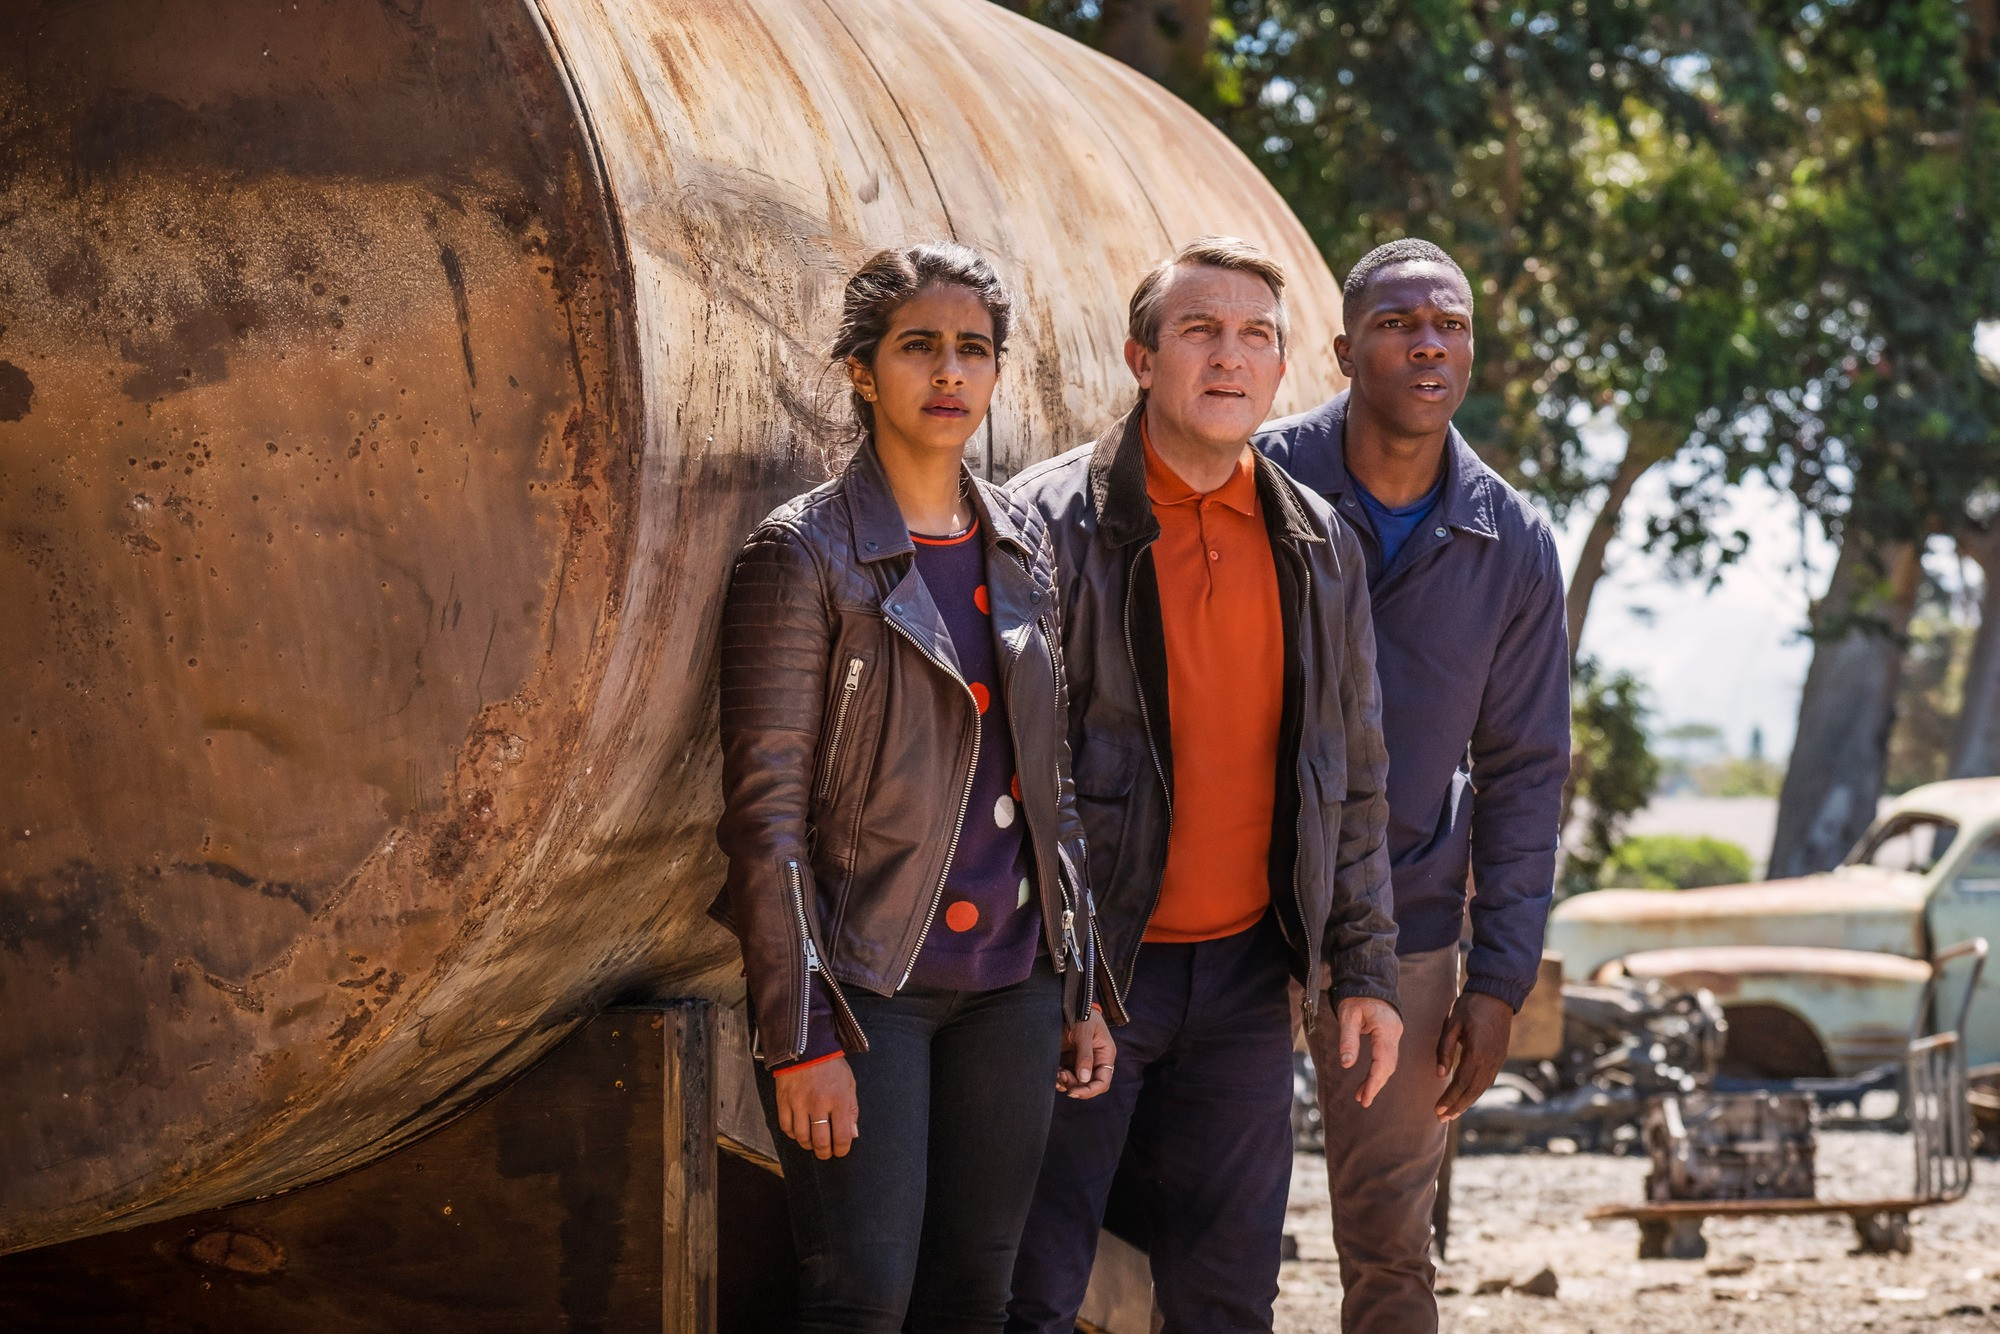 Mandip Gill, Bradley Walsh and Tosin Cole in Doctor Who series 11 (BBC, HF)